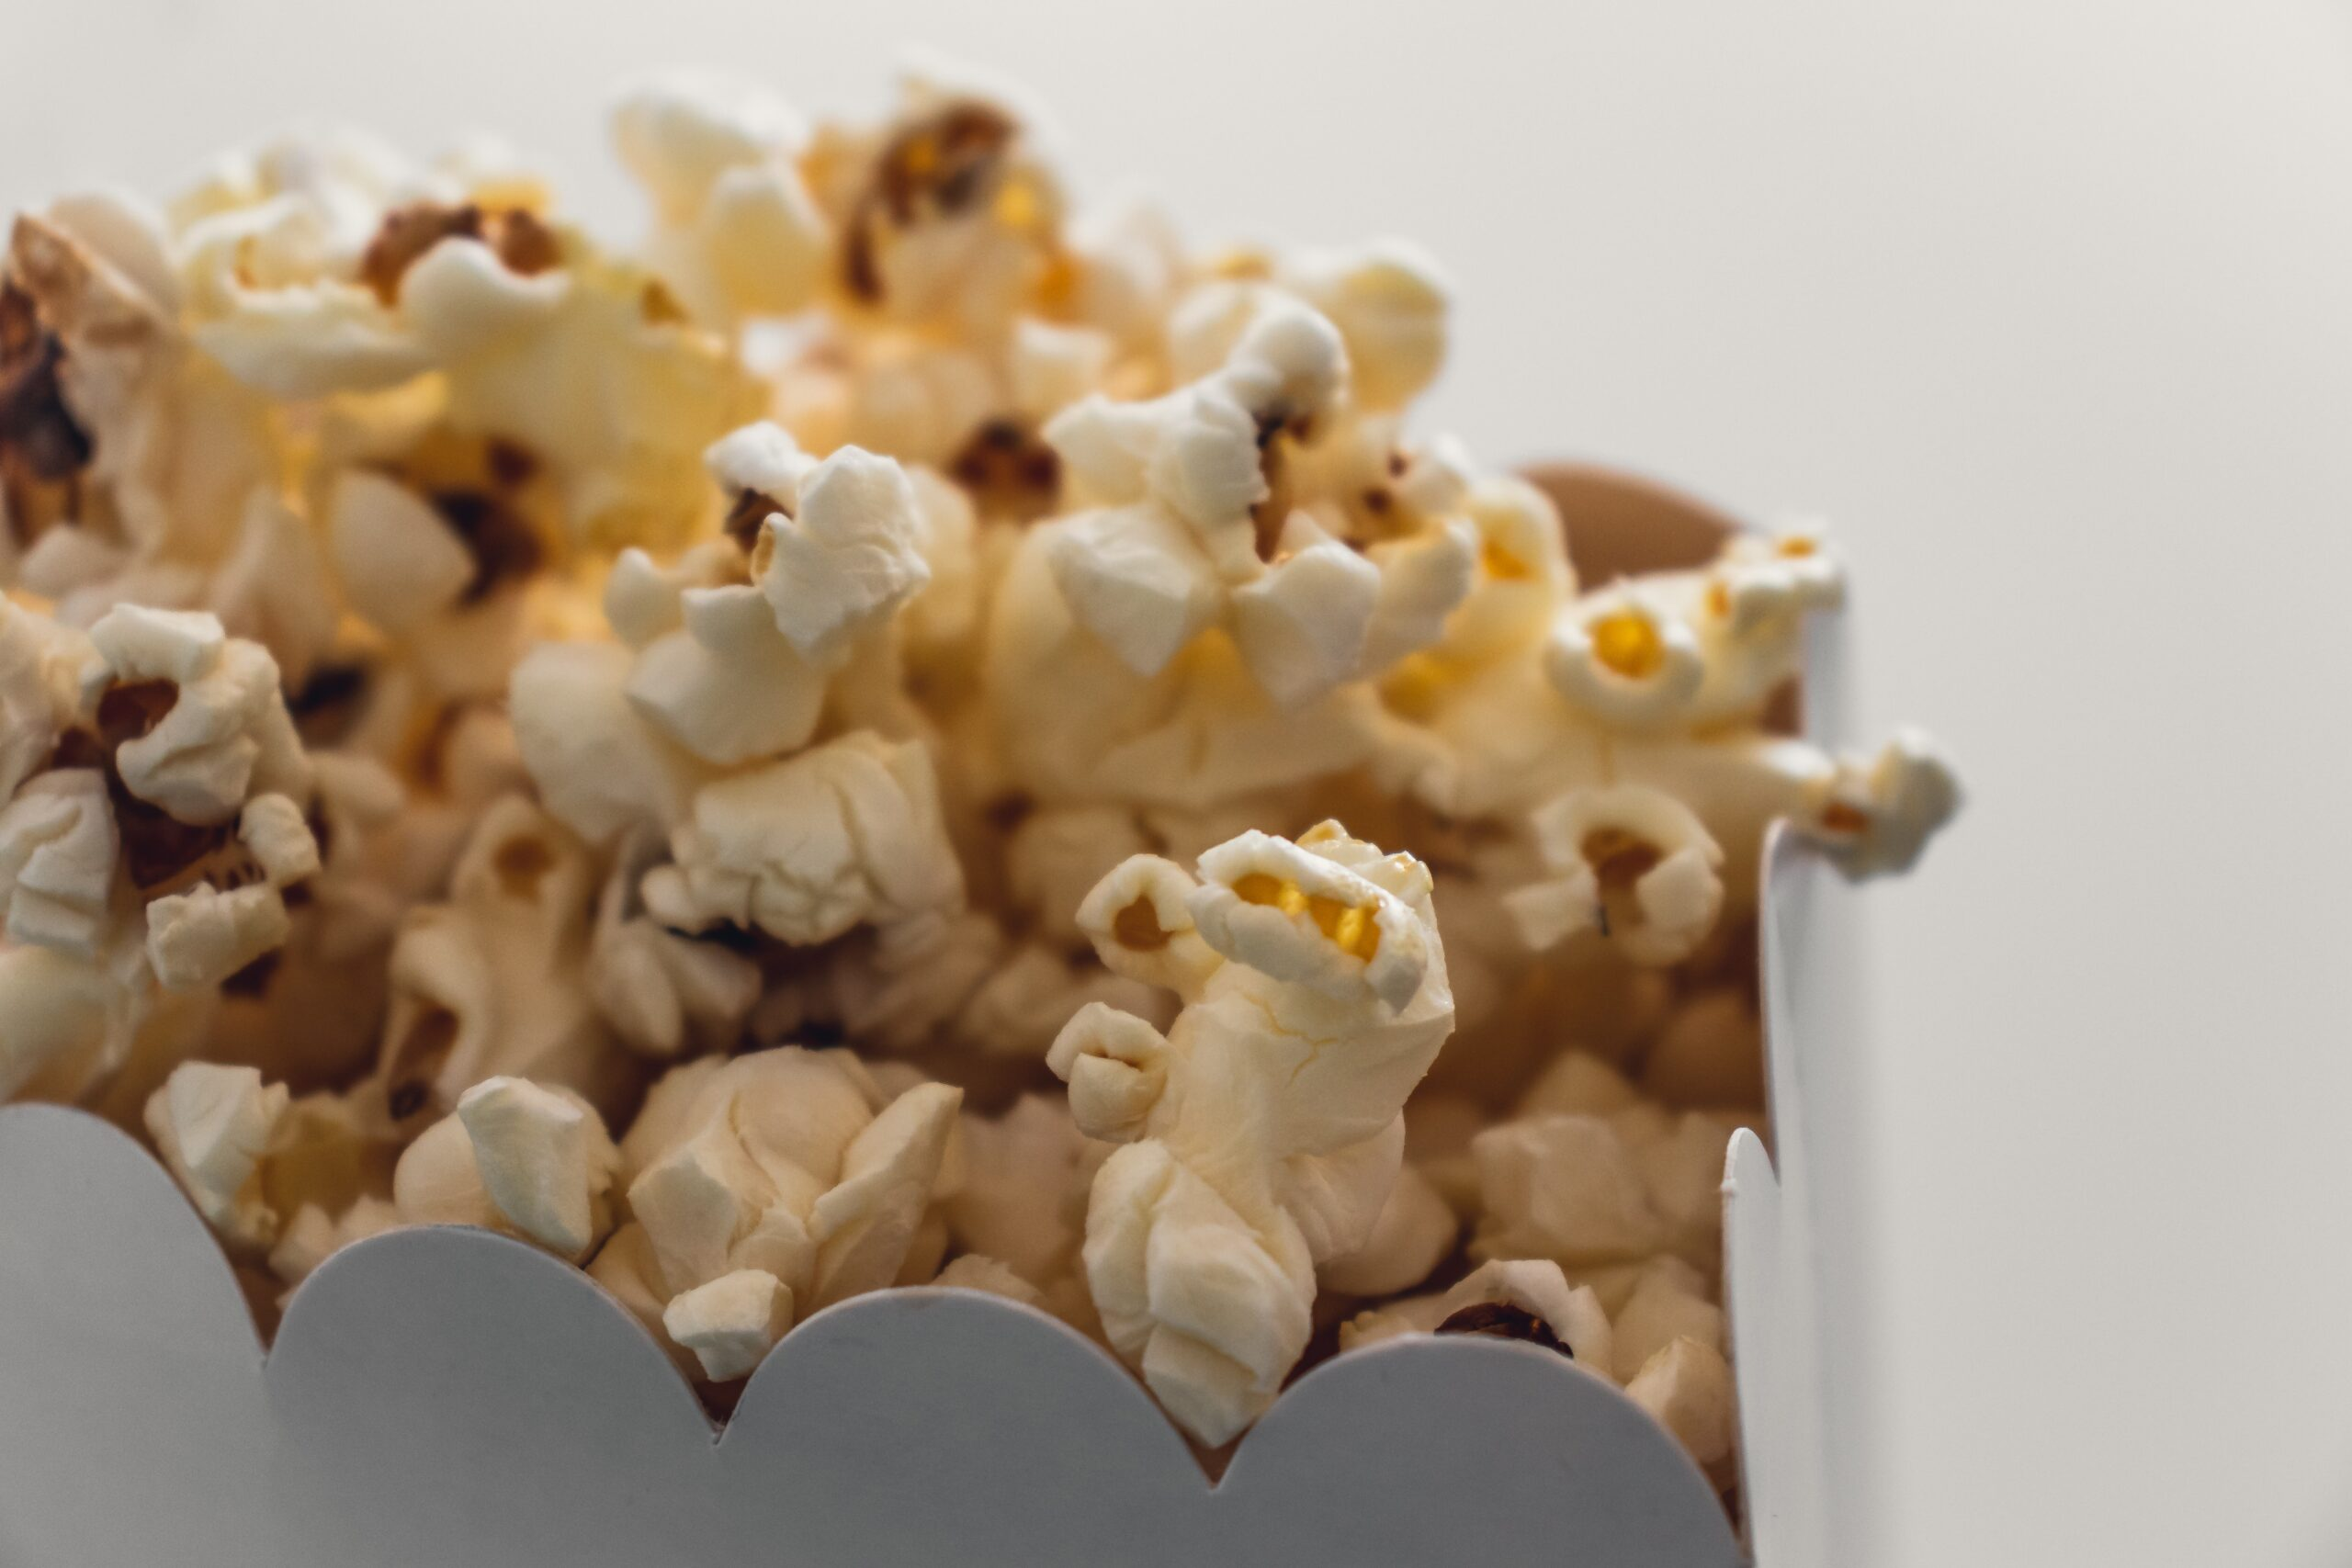 Stovetop Popcorn Recipe - Latch onto Health